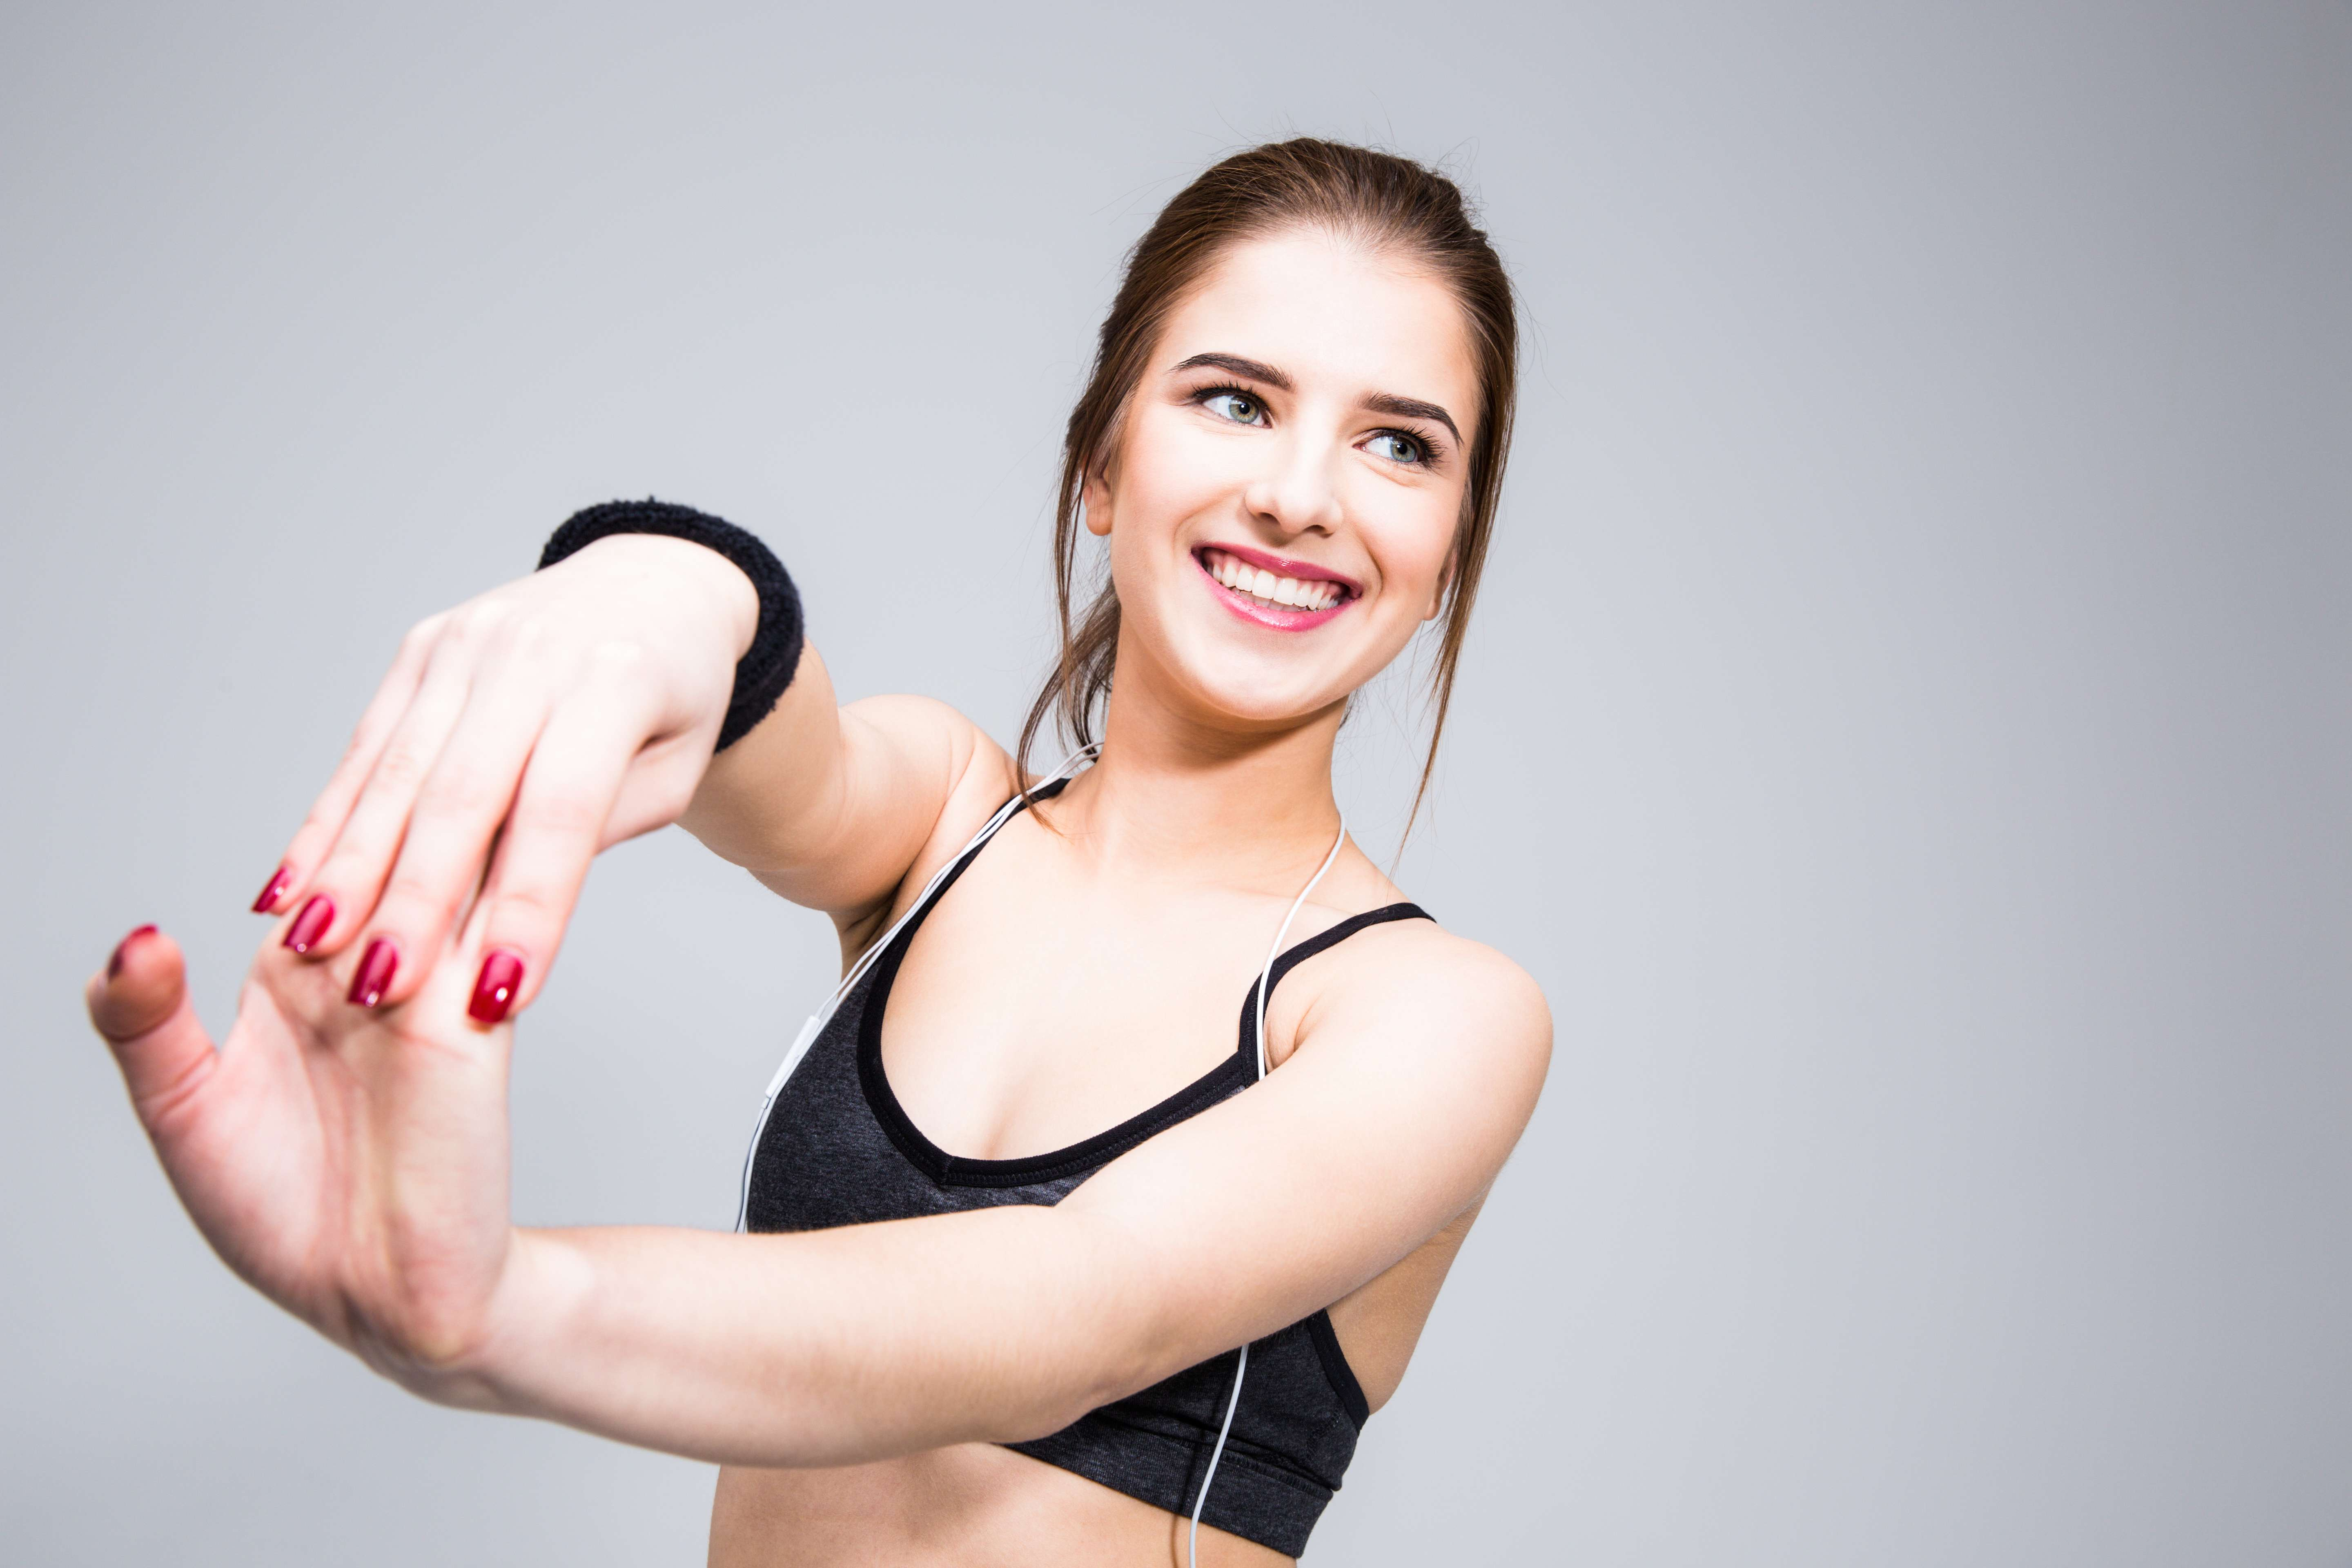 Stretching Biceps Muscle